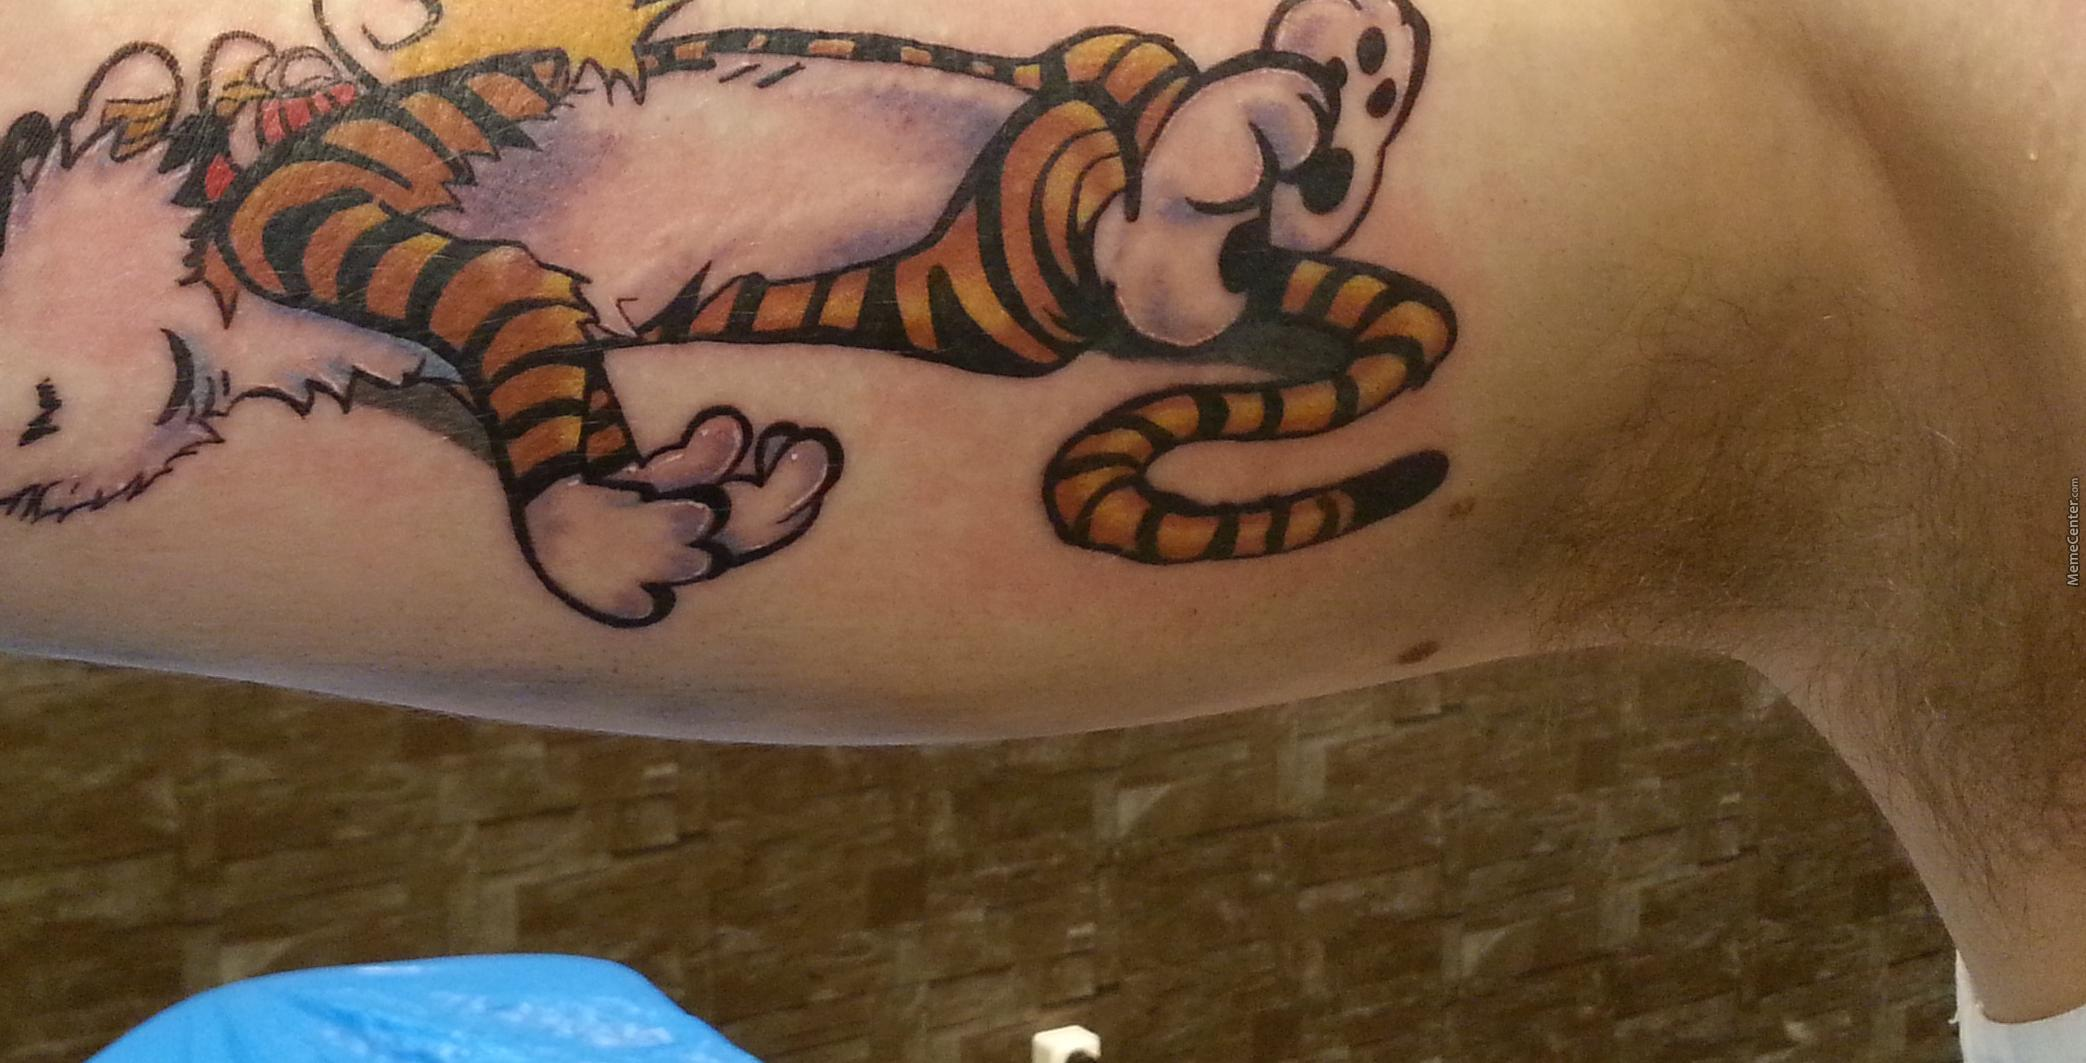 Best tattoo ever by berling meme center for The best tattoos ever